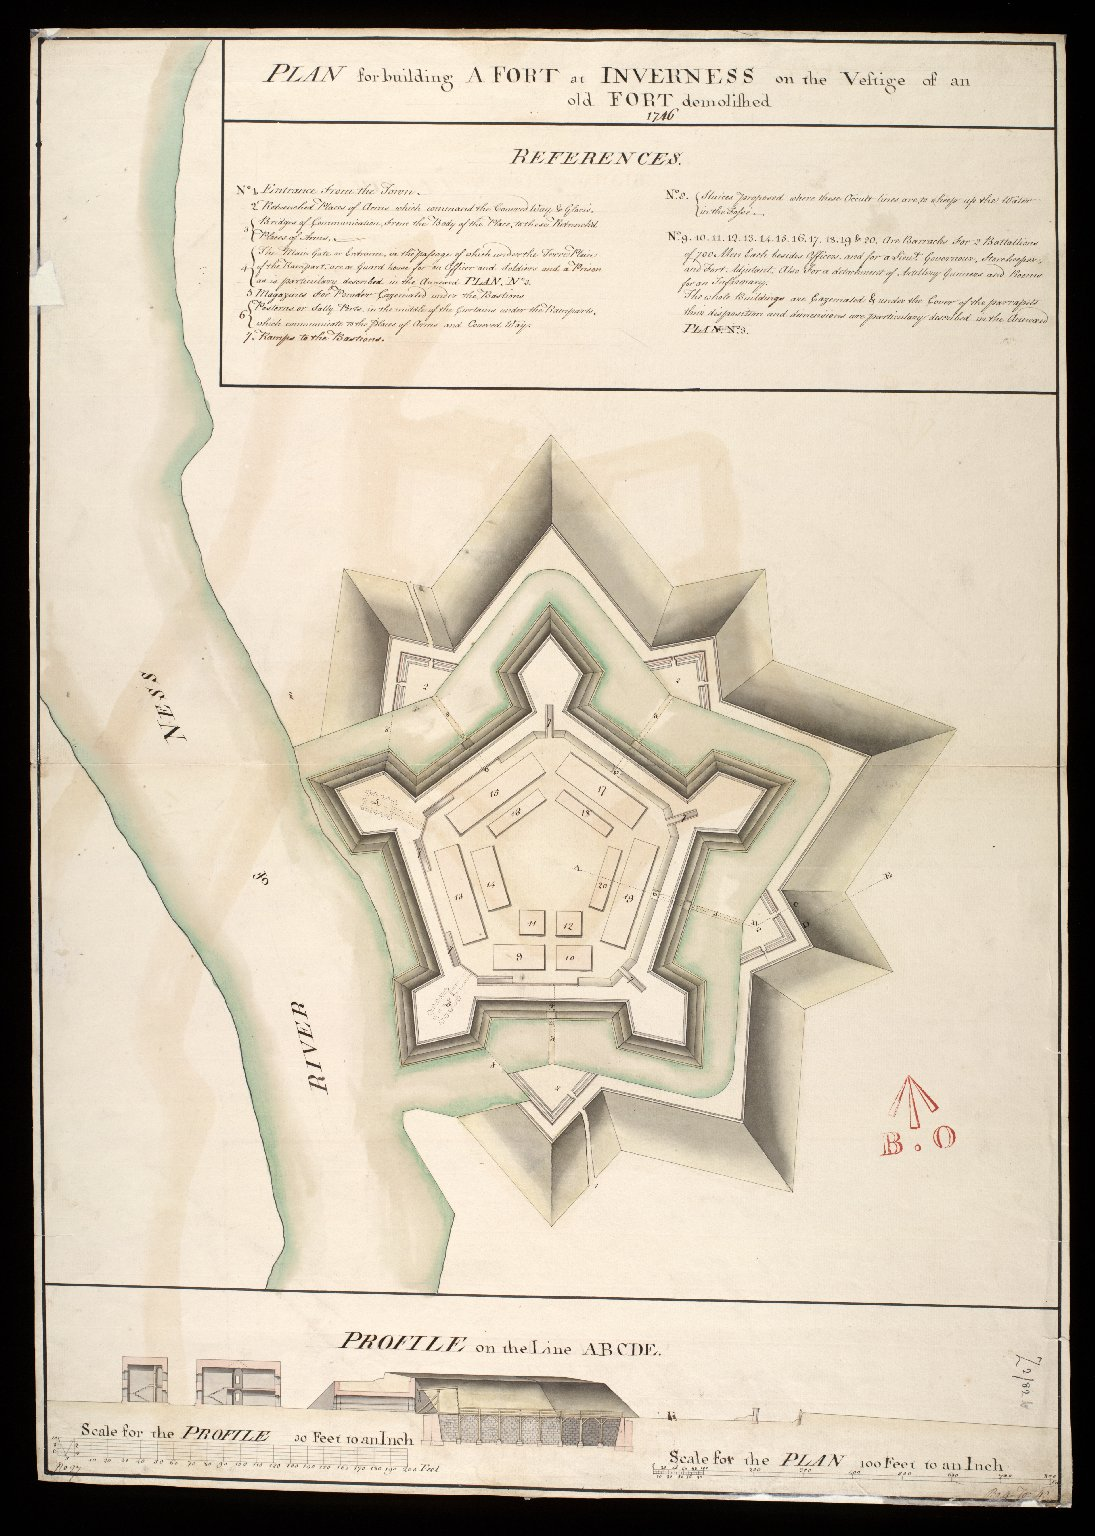 Plan for building a Fort at Inverness on the vestige of an old fort demolished 1746 [1 of 1]